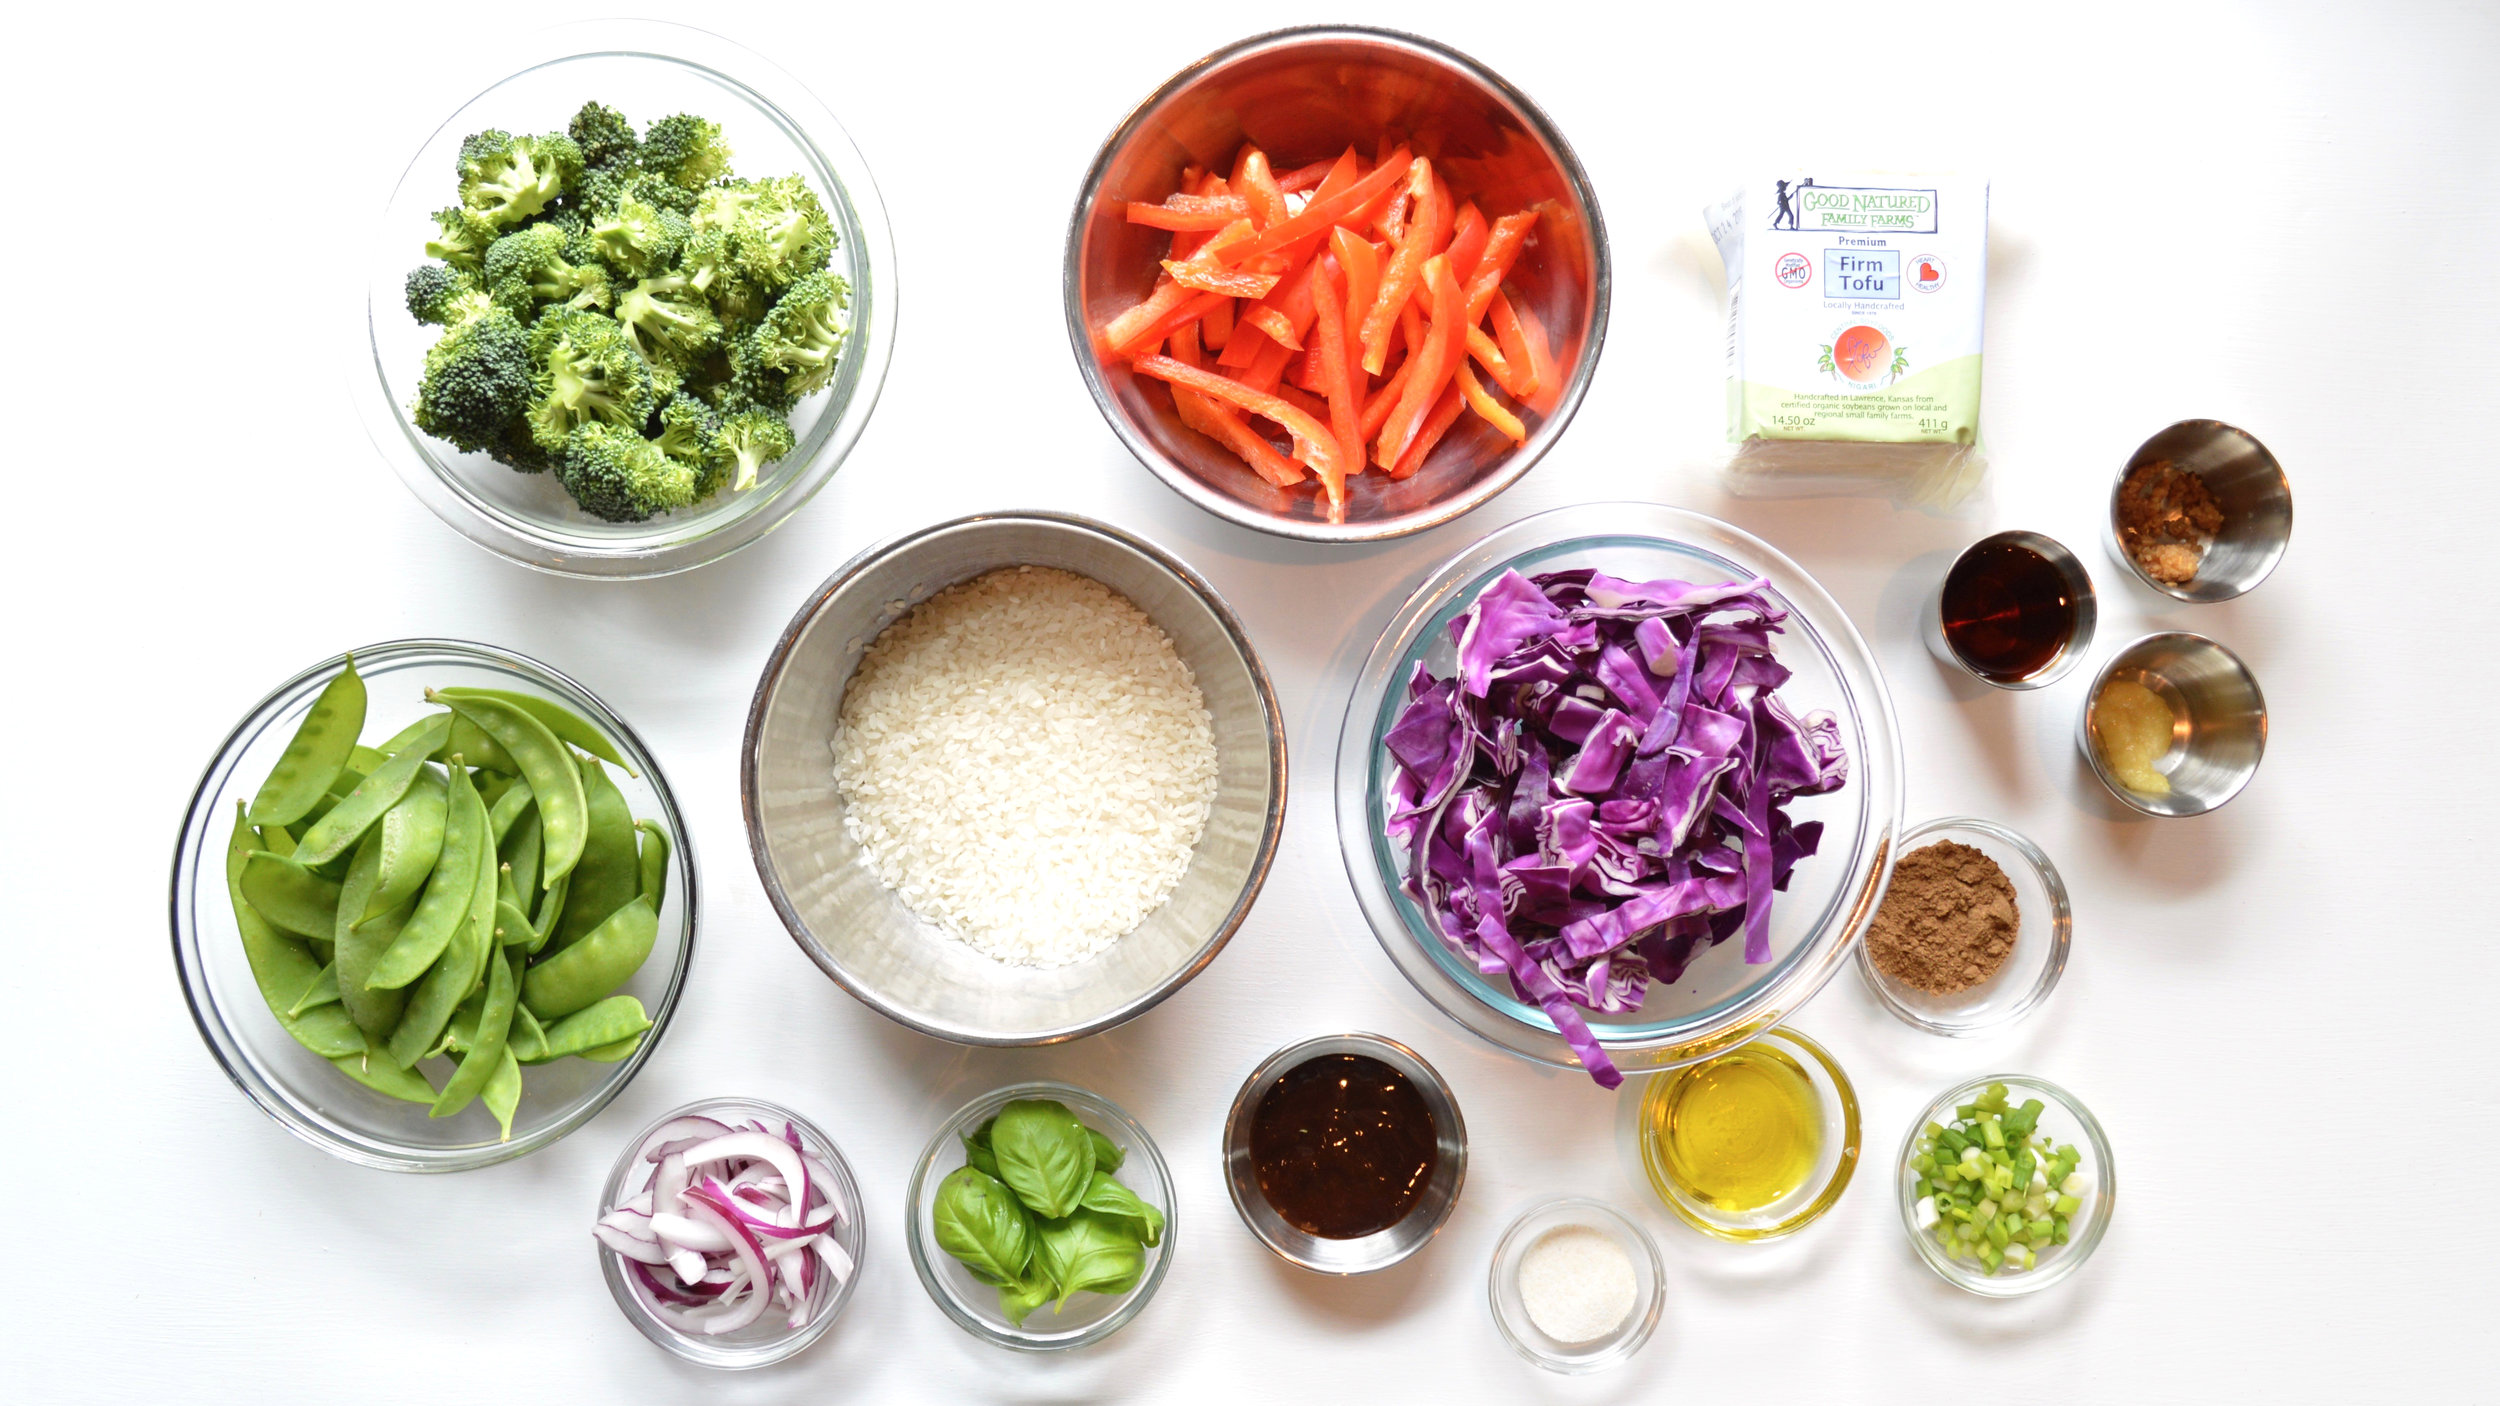 Stir-Fry_ingredients_16x9.jpg